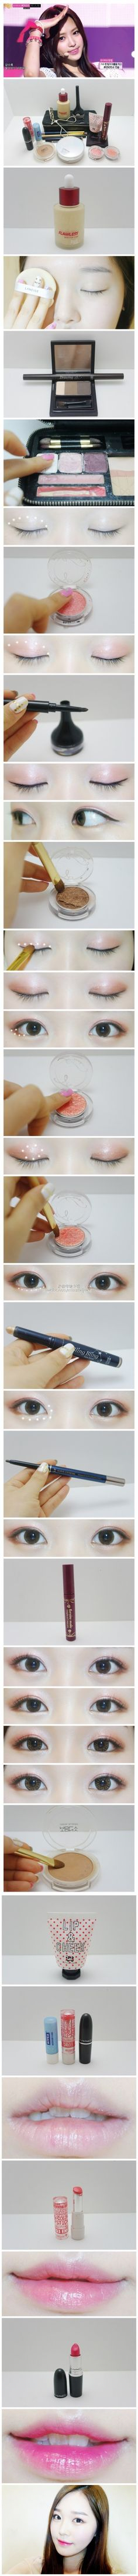 Korean make up   http://eyecandyscom.tumblr.com  www.AsianSkincare.Rocks